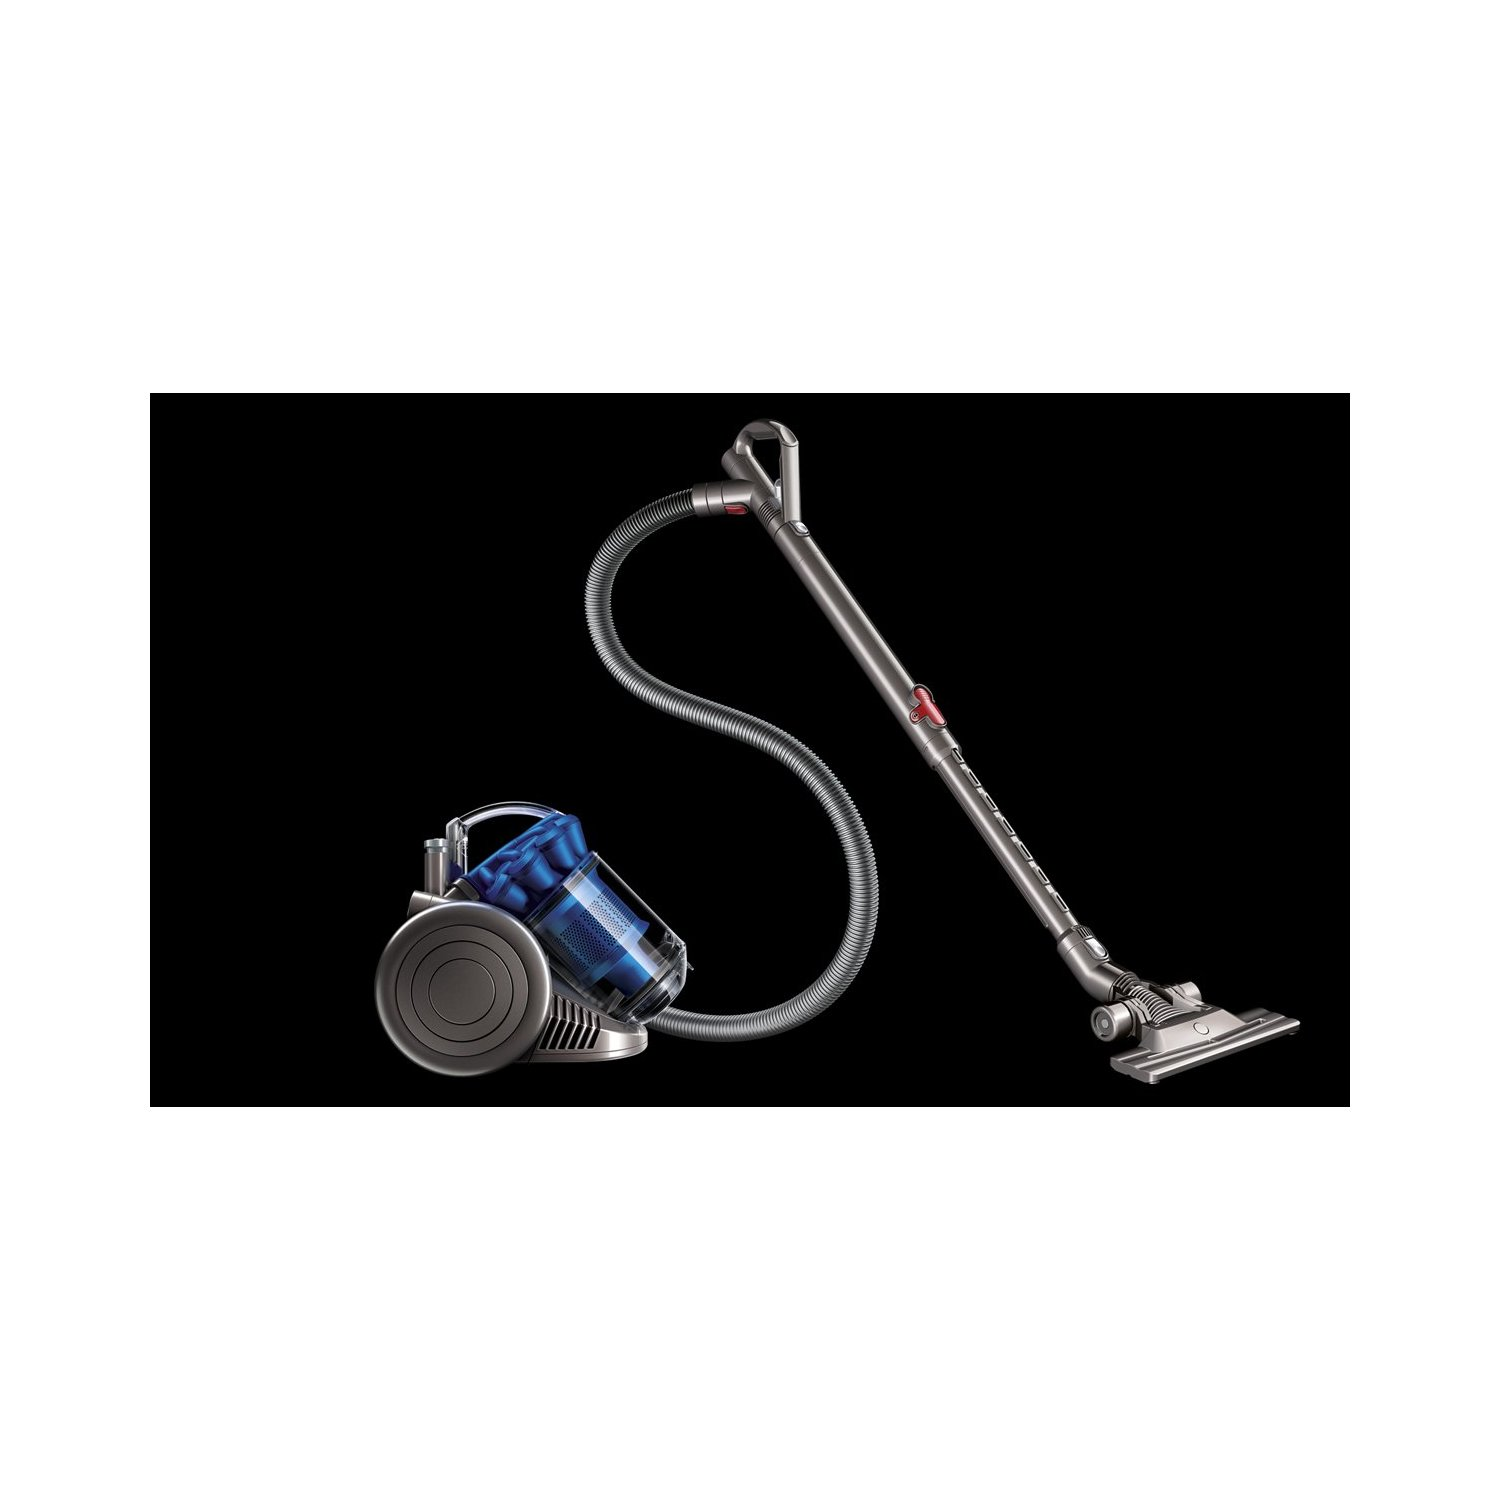 Dyson Vacuum Cleaners Dyson Dc26 Vacuum Cleaner